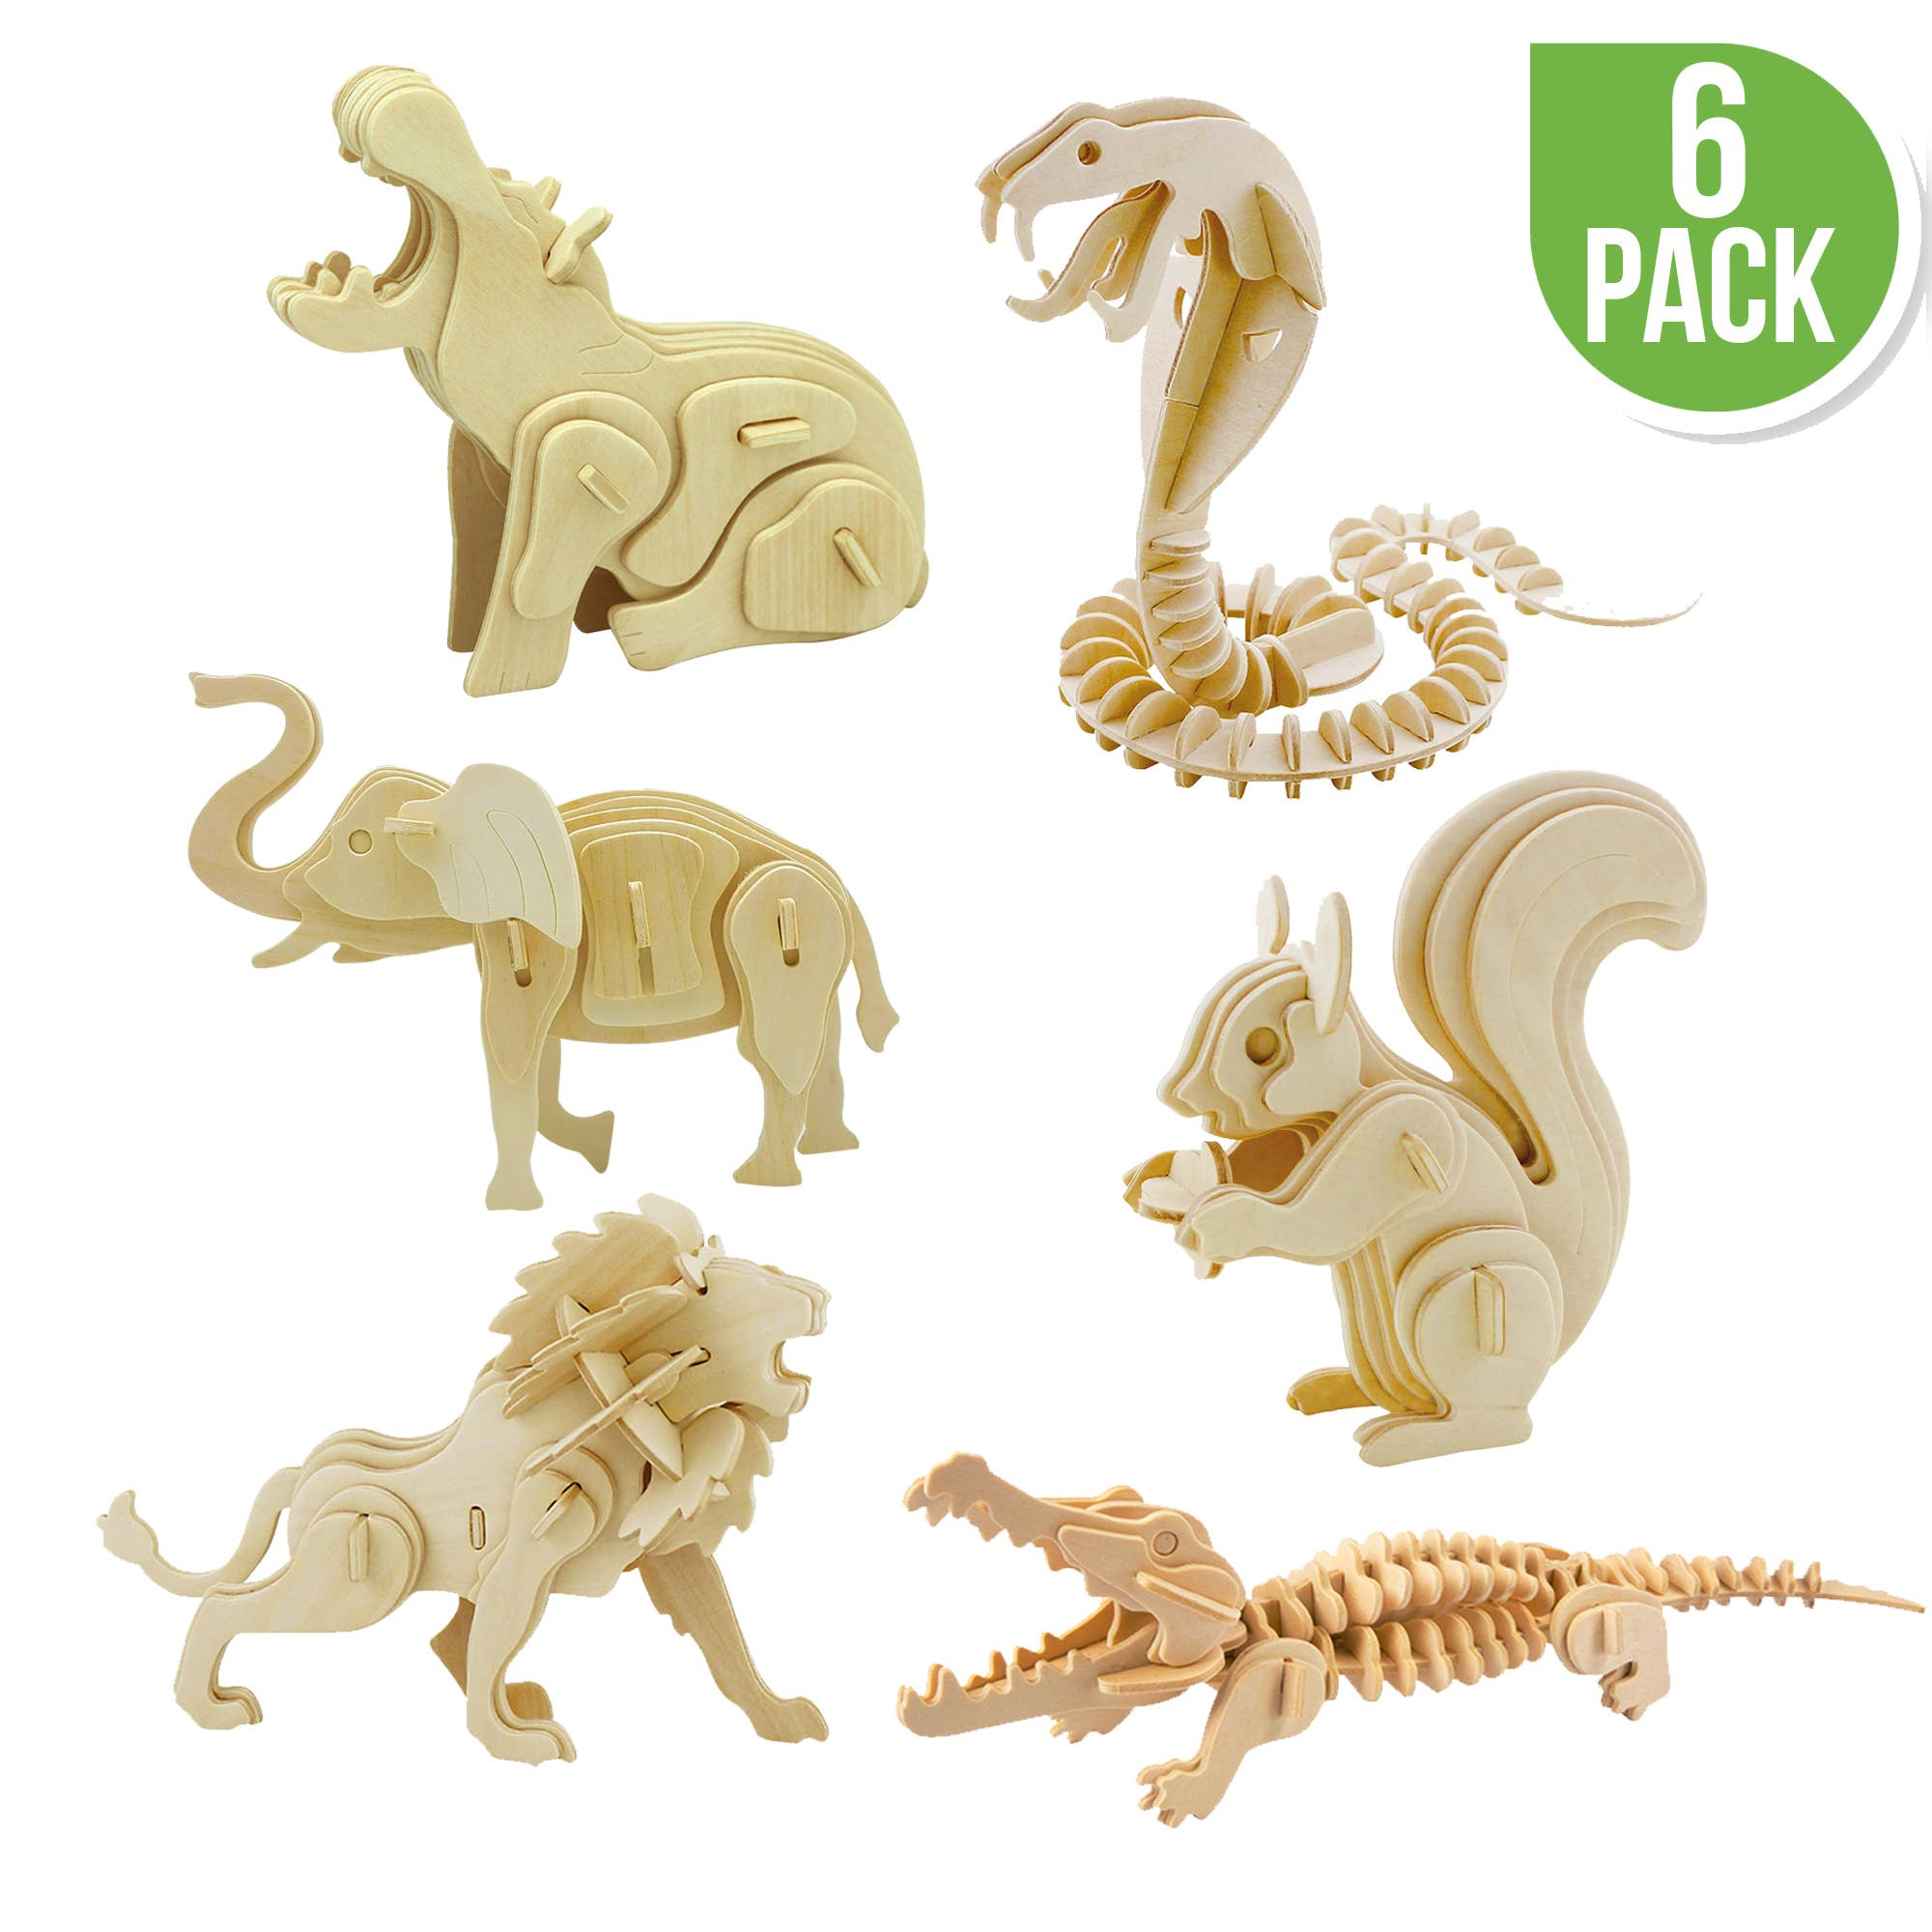 Wild Animals 3D Wooden Puzzle